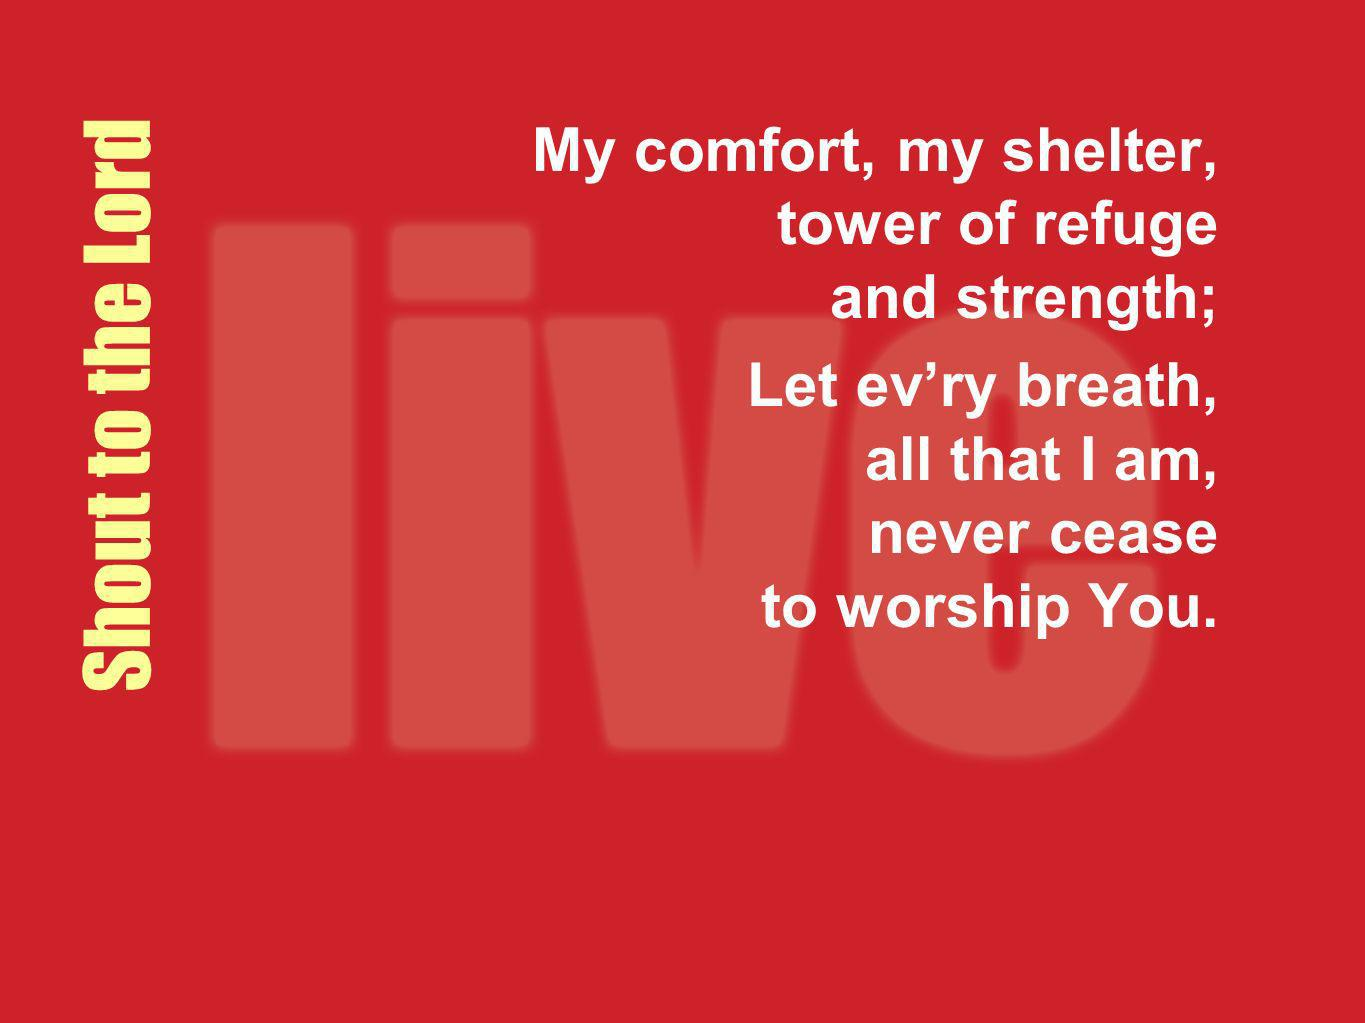 My comfort, my shelter, tower of refuge and strength;